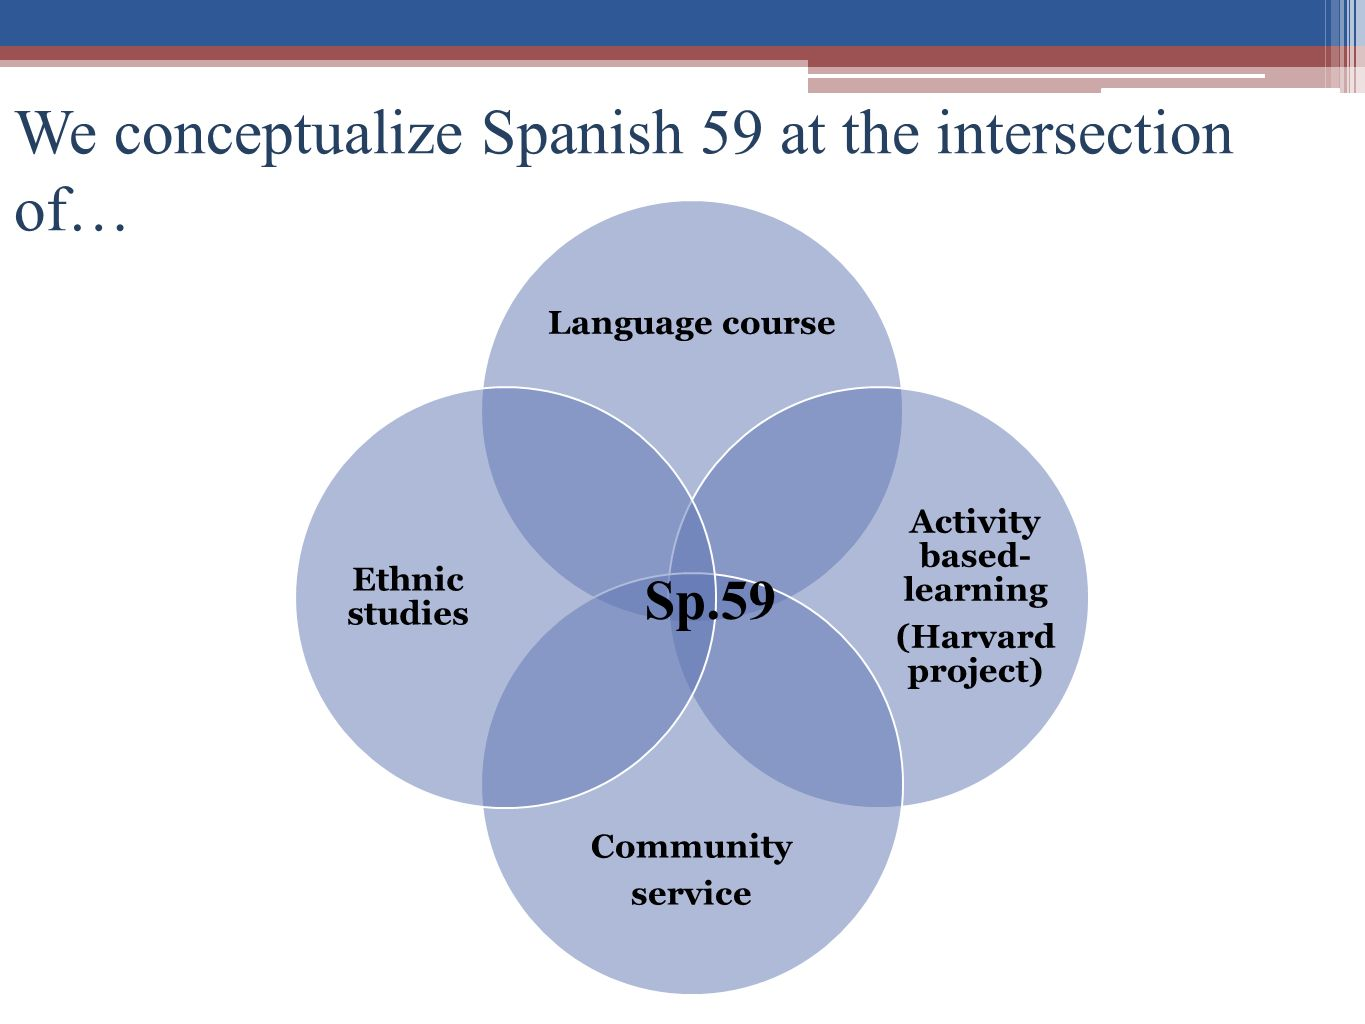 As language course… Goals: Development of translingual and transcultural competence (MLA, 2007).